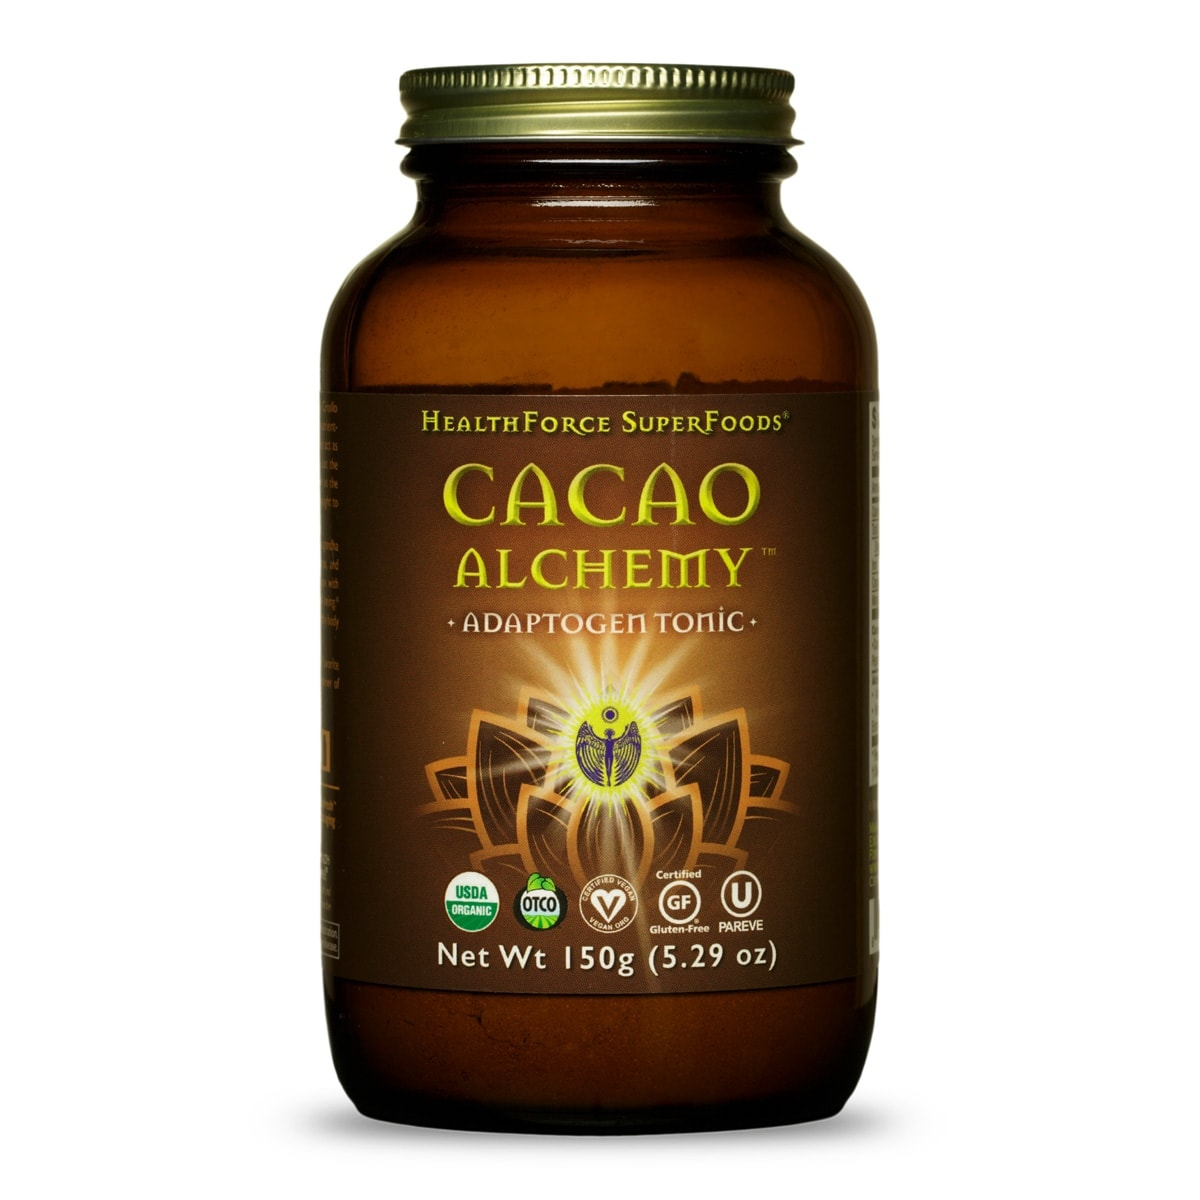 Cacao Alchemy™ Adaptogen Tonic